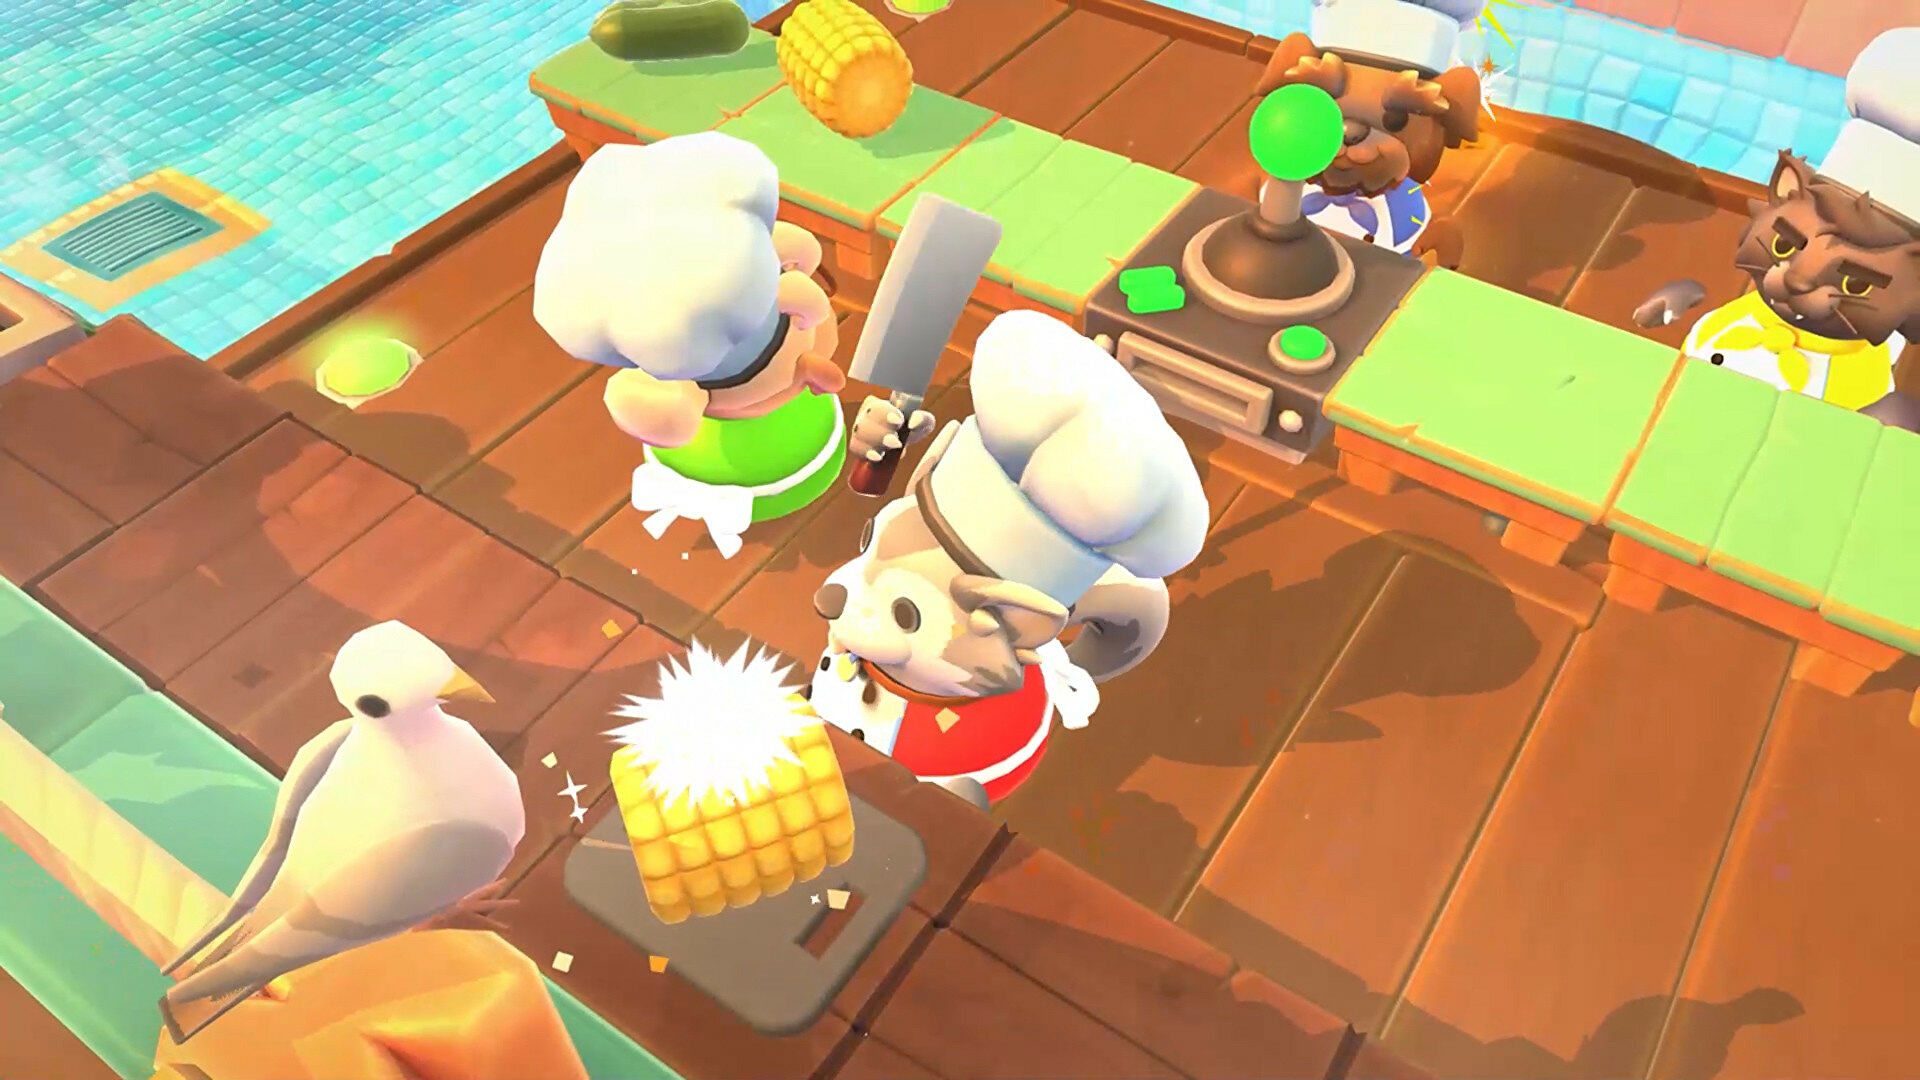 Overcooked 2 is free to keep via the Epic Games Store this week